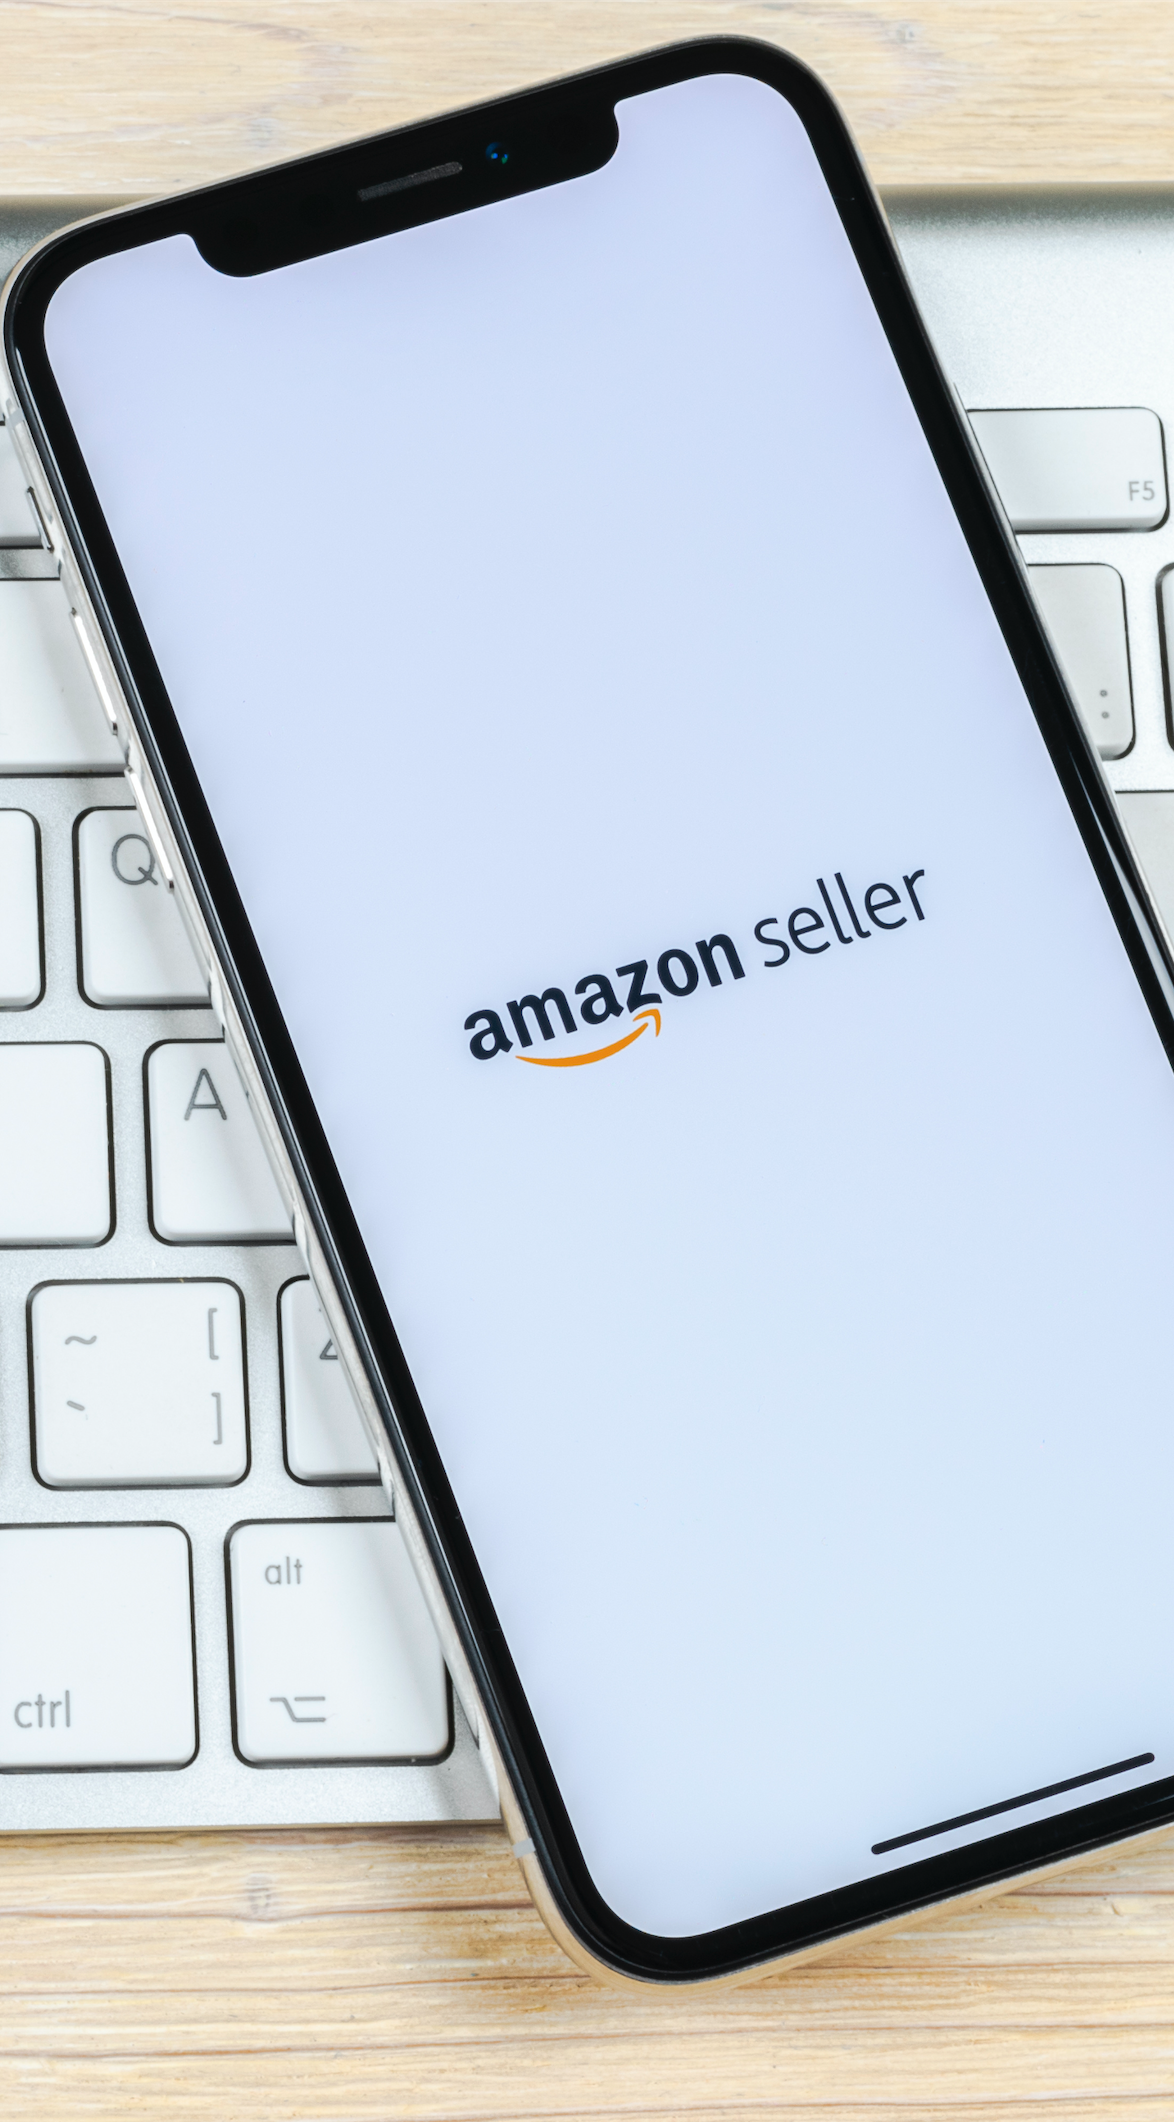 Amazon seller mobile app on iphone screen